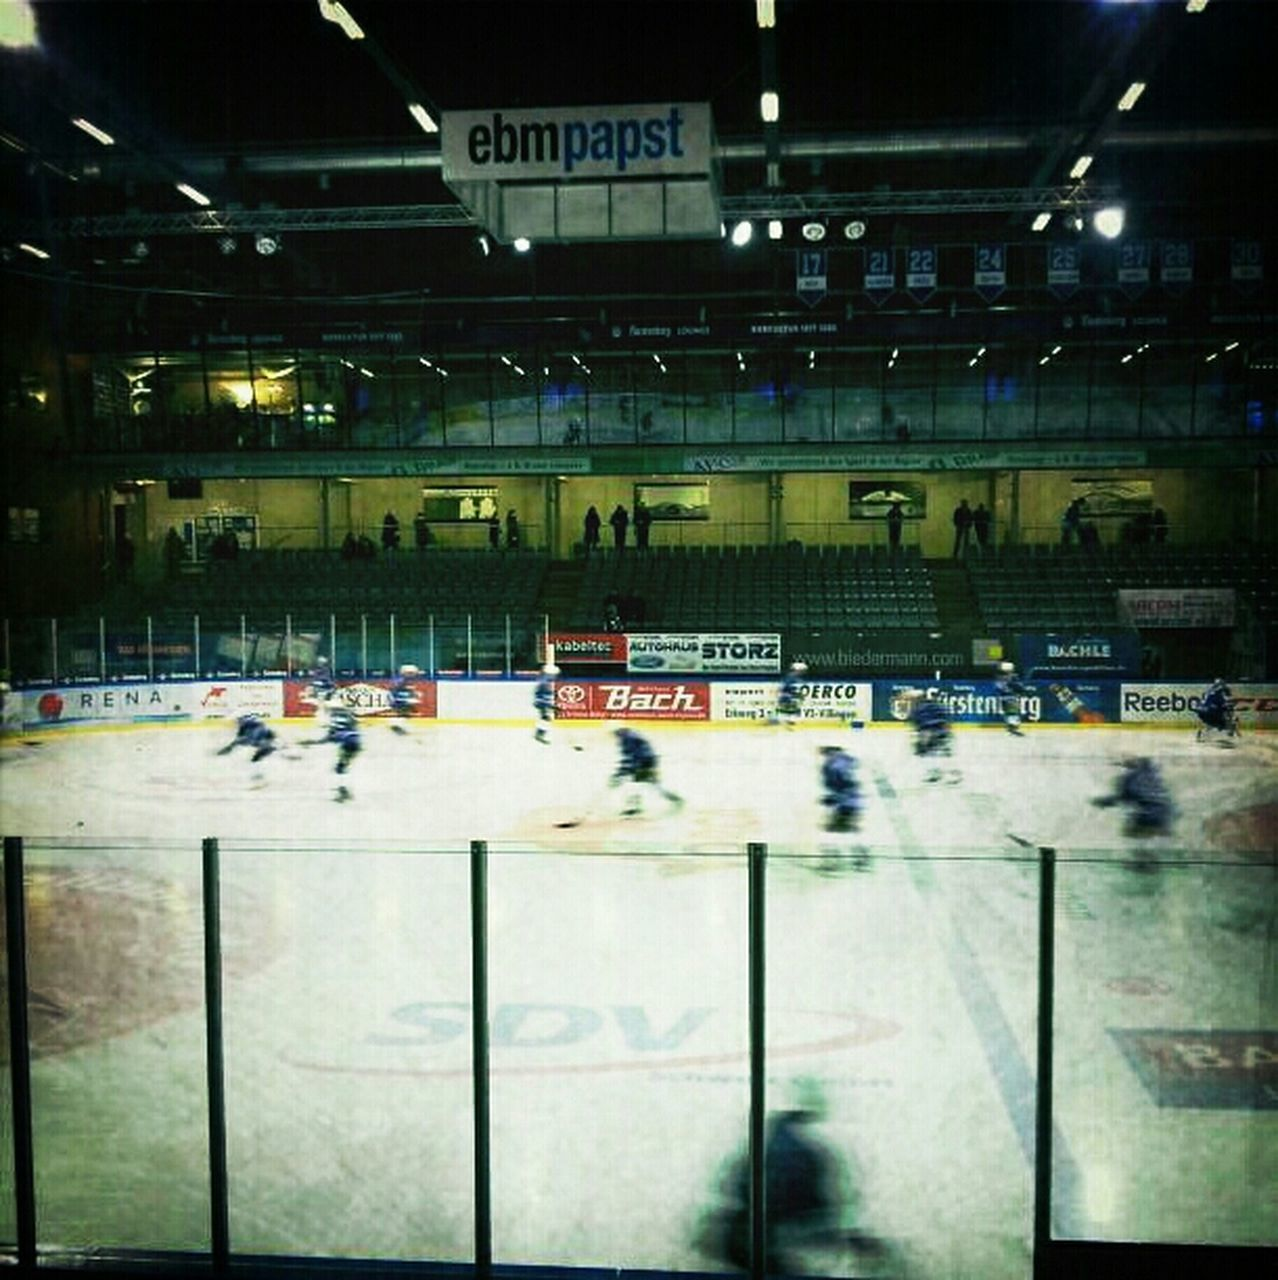 cold temperature, transportation, illuminated, indoors, winter, ice rink, large group of people, architecture, land vehicle, real people, snow, built structure, night, stadium, ice hockey, people